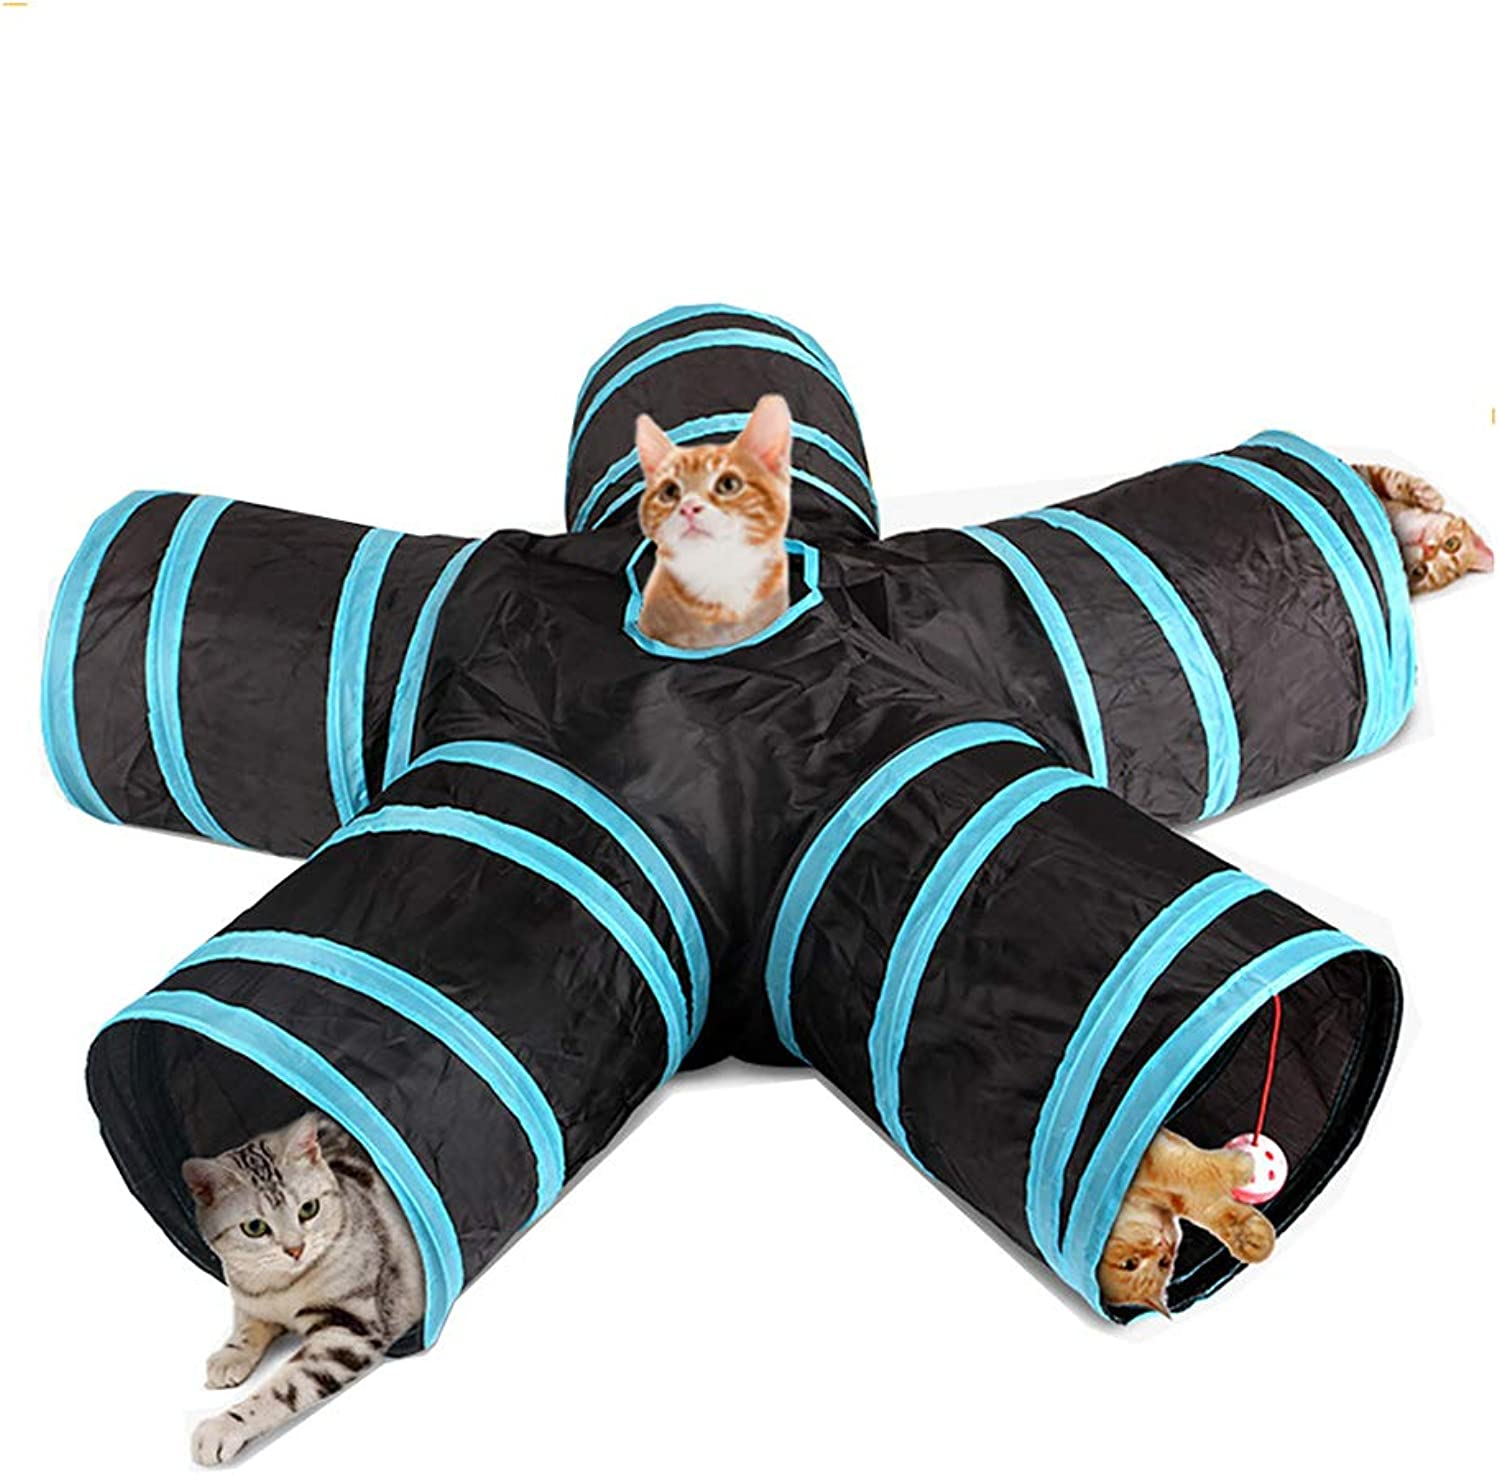 Cat Tunnel, 5Way Foldable Pet Toy Tunnel  Rabbit, Cat and Dog Game Pipe Indoor Outdoor Sports, Hide, Train and Run  Dark bluee